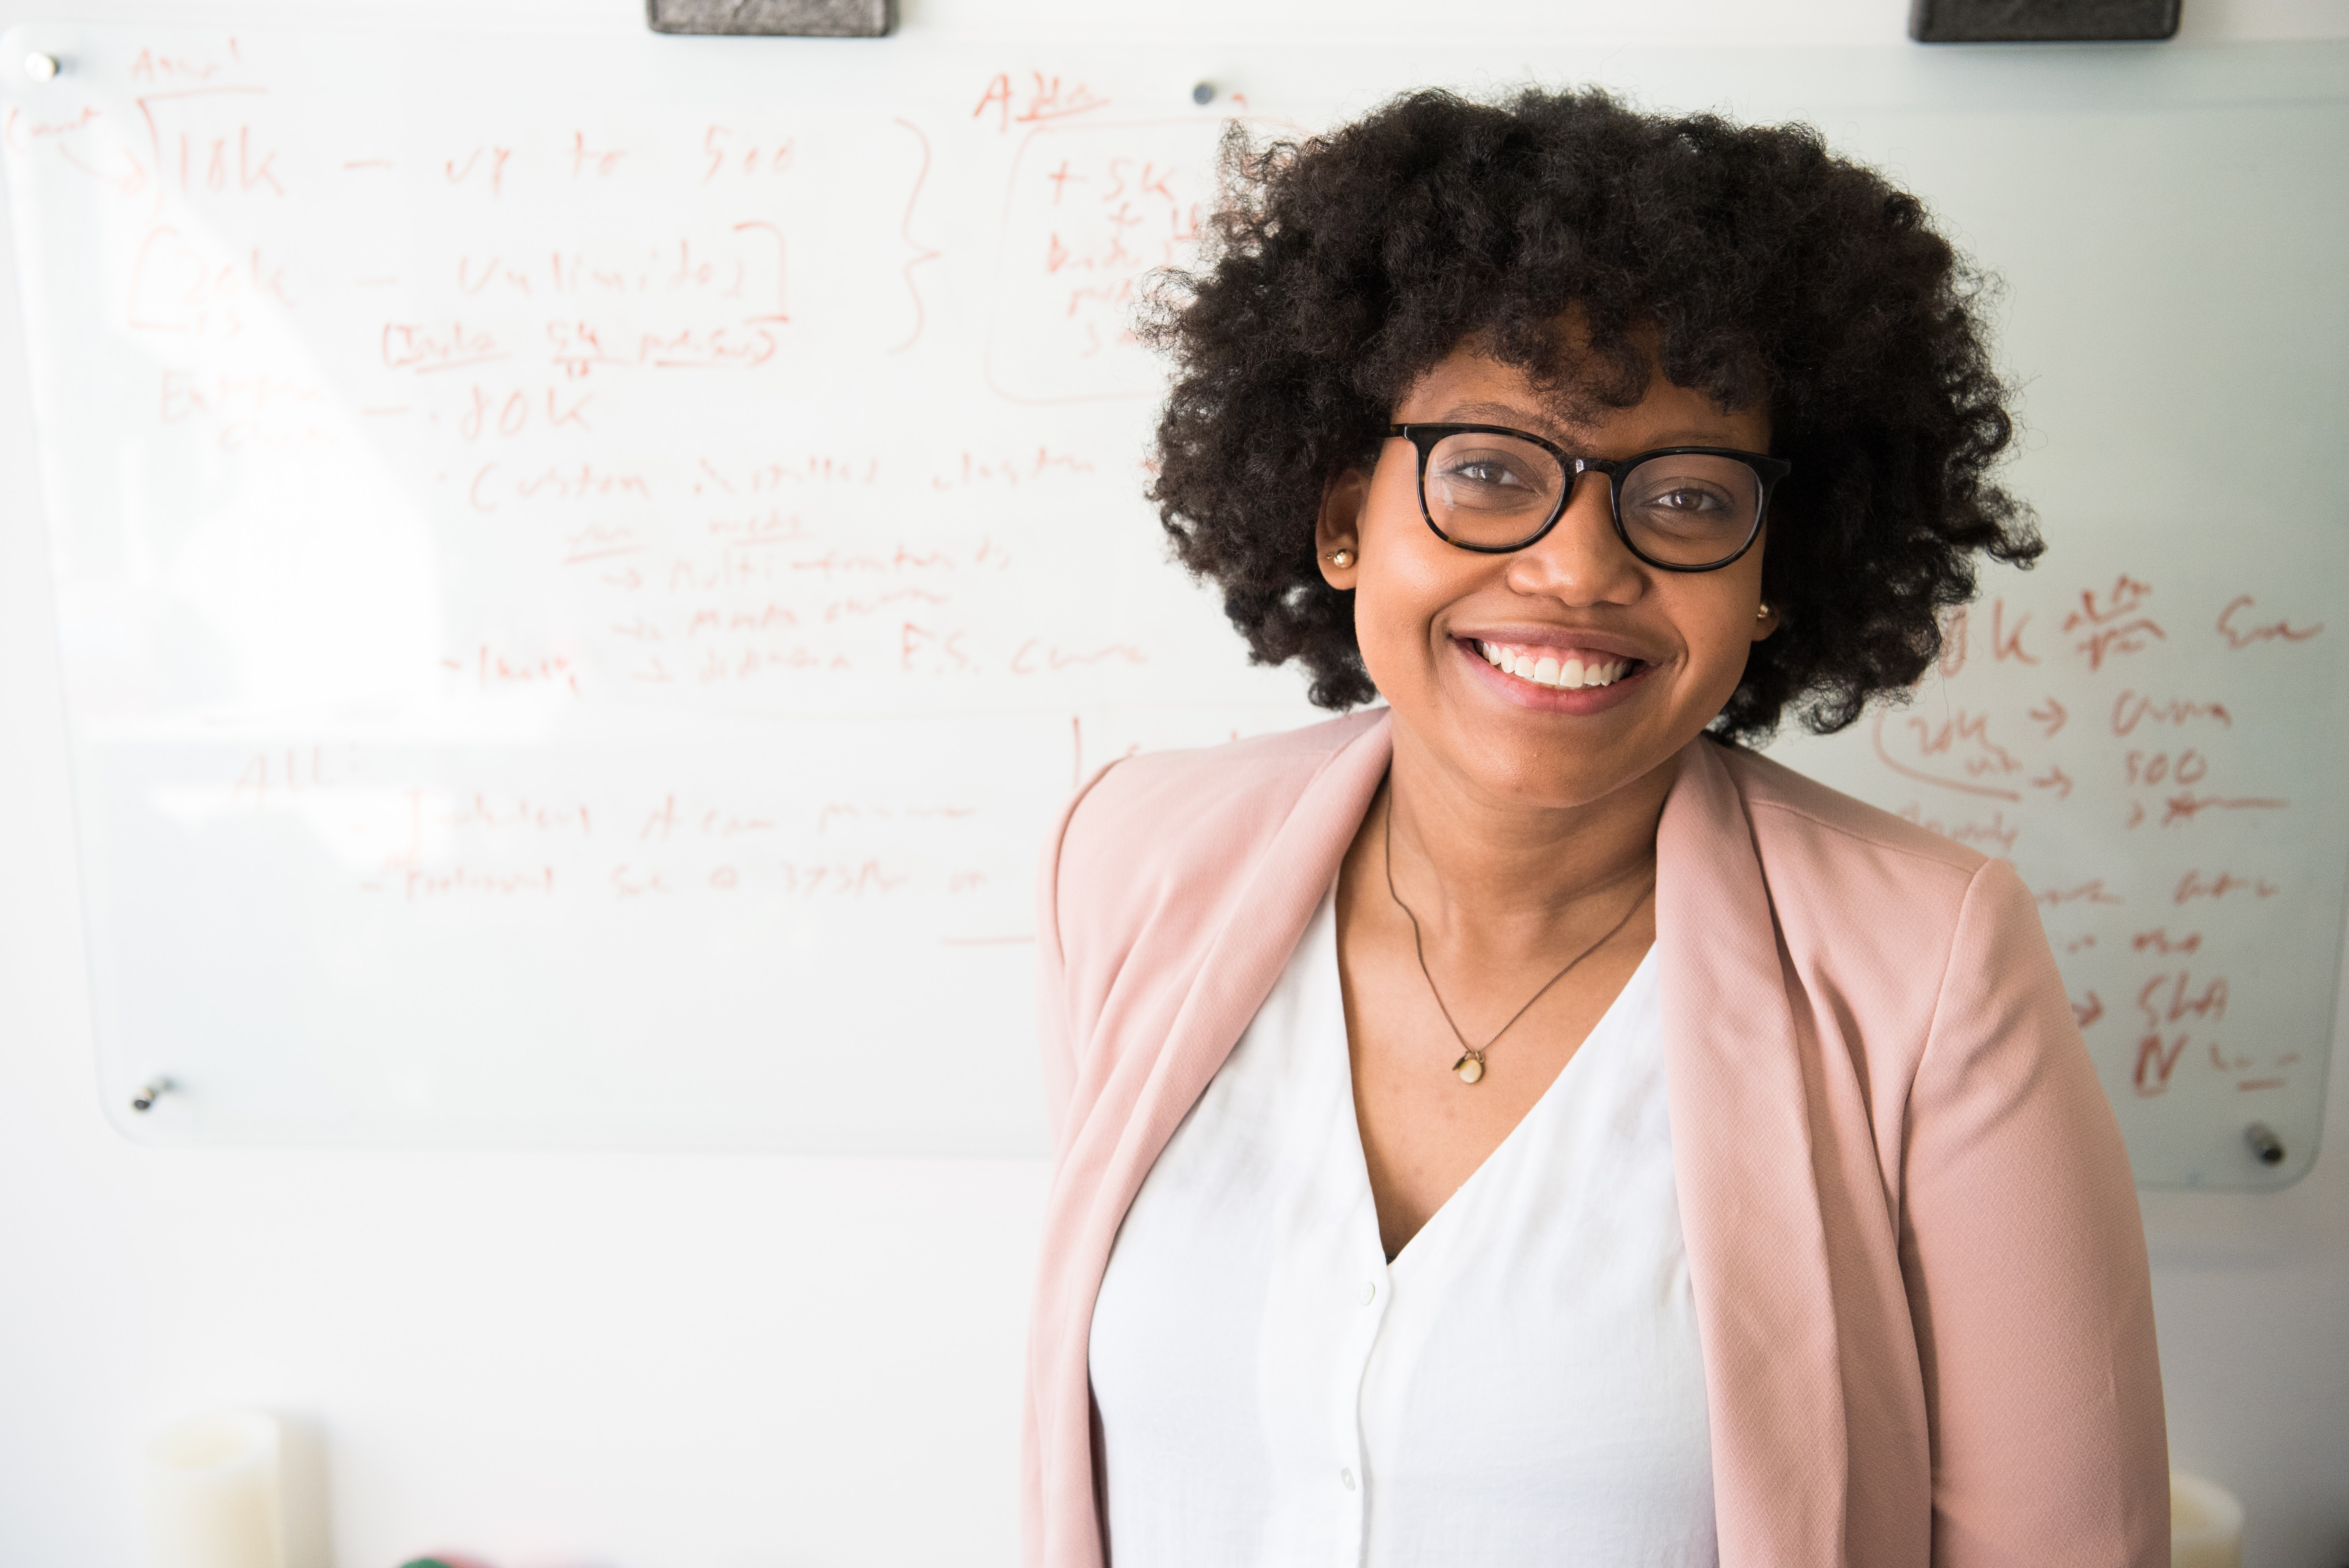 Teacher smiling for a photo while standing in front of a white board with classroom notes